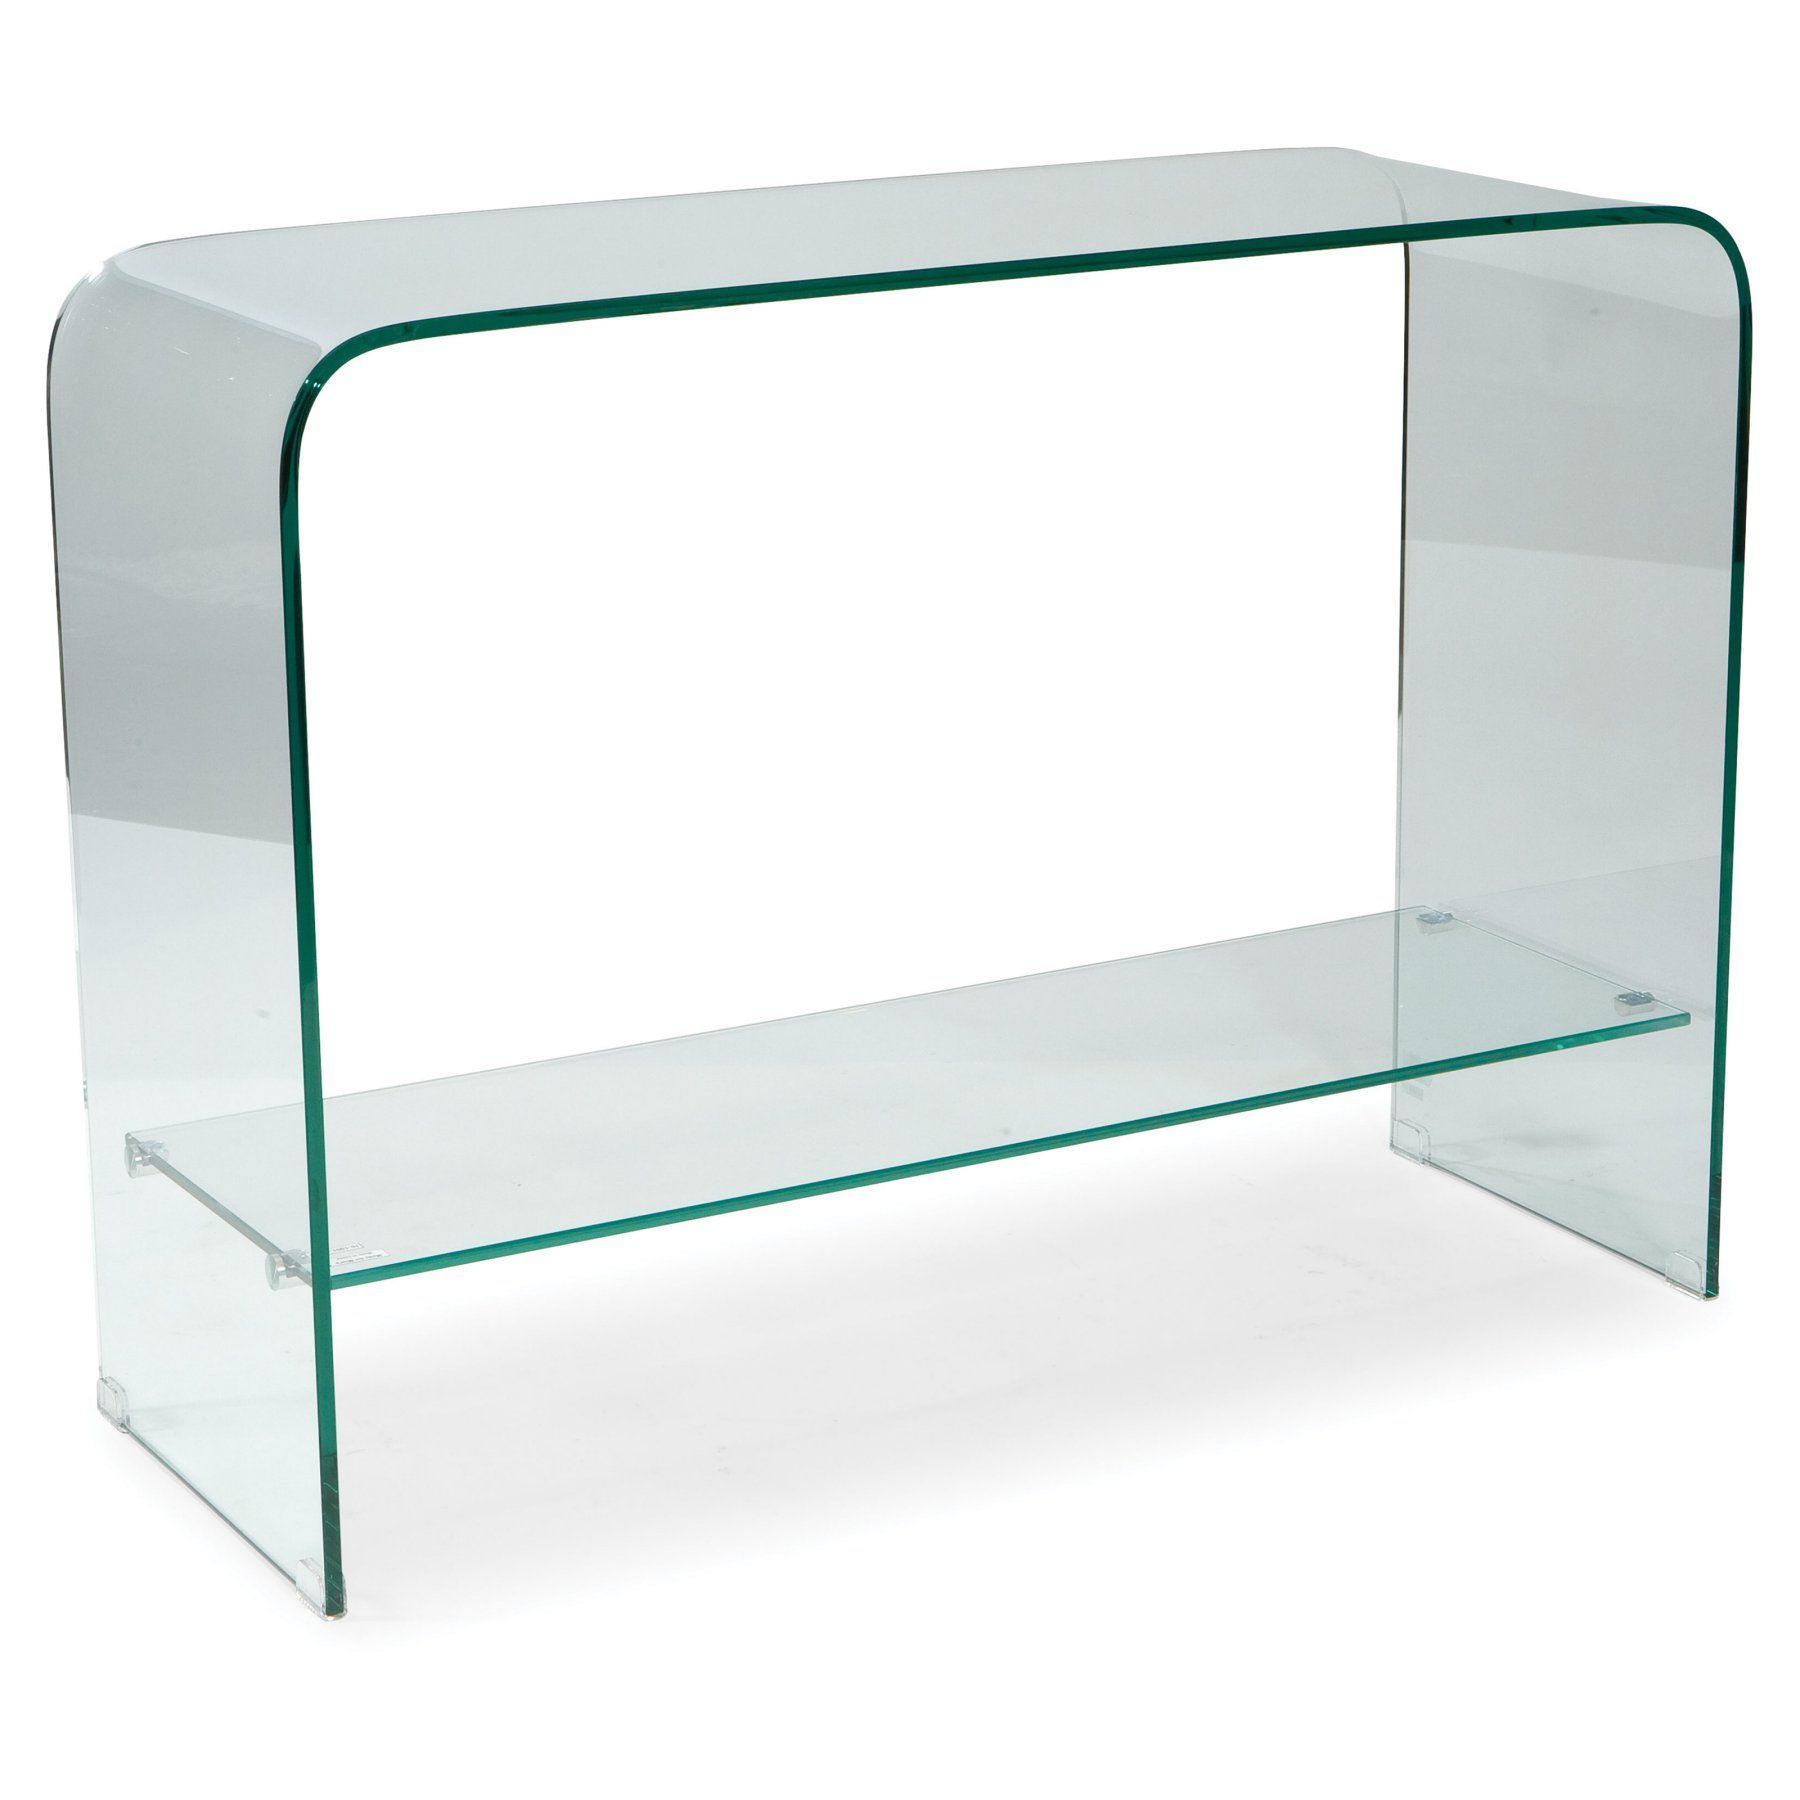 Glass console table decor  Moeus Home Collection Sono Glass Console Table  Clear  HI